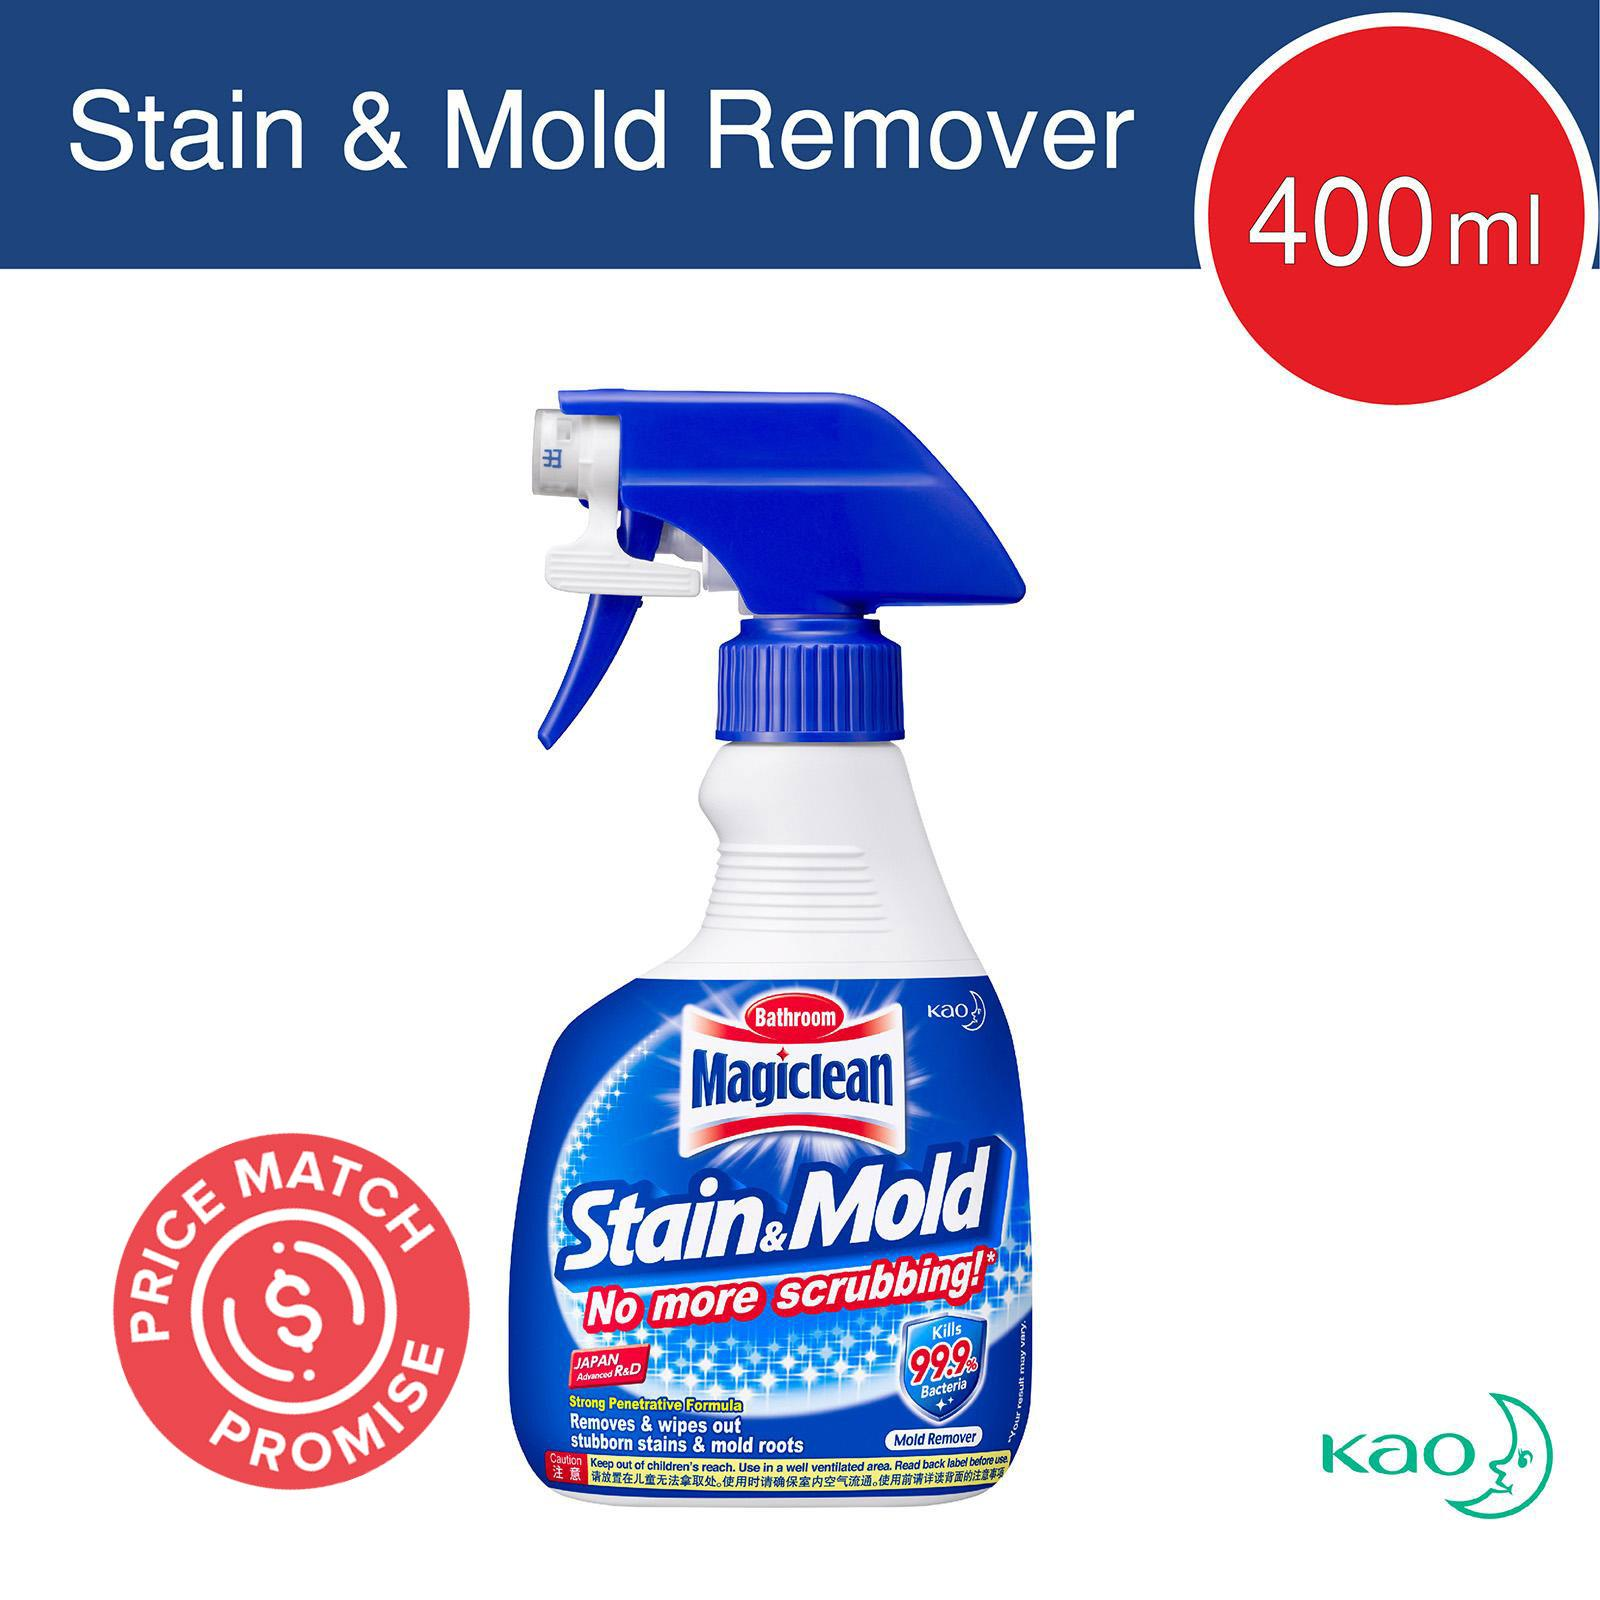 MAGICLEAN magiclean bathroom stain and mold remover 400ml